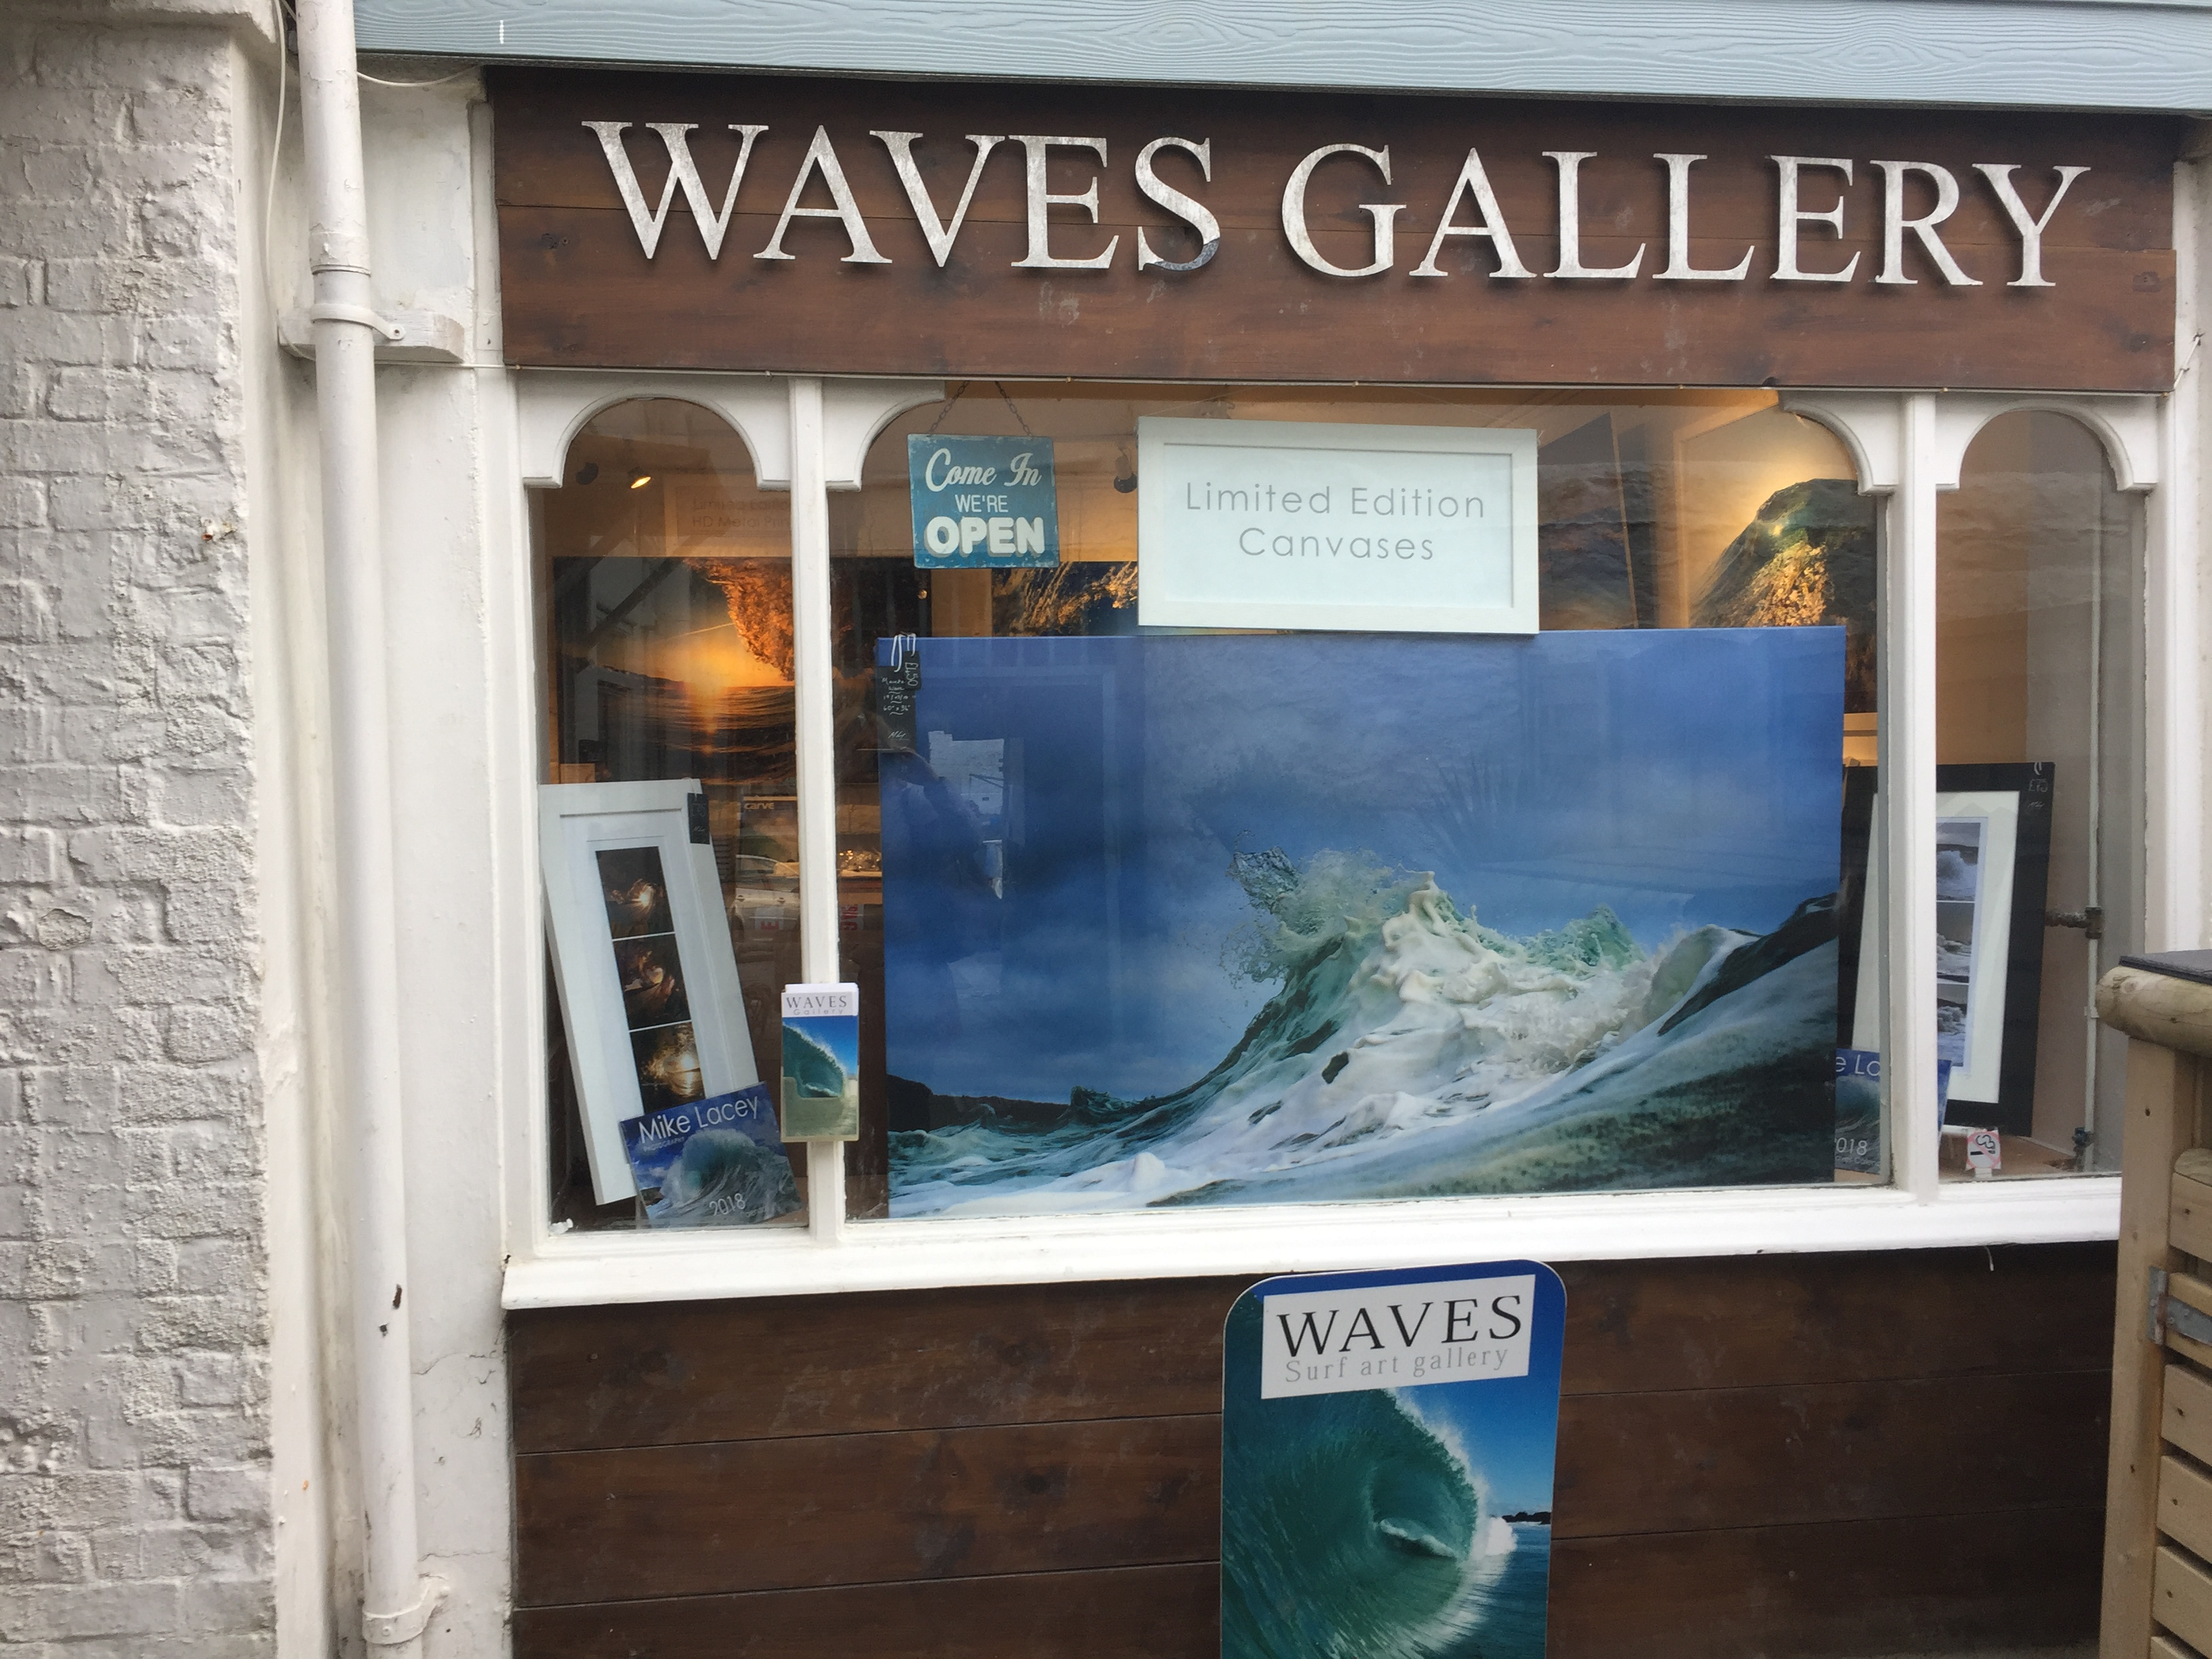 Waves Gallery